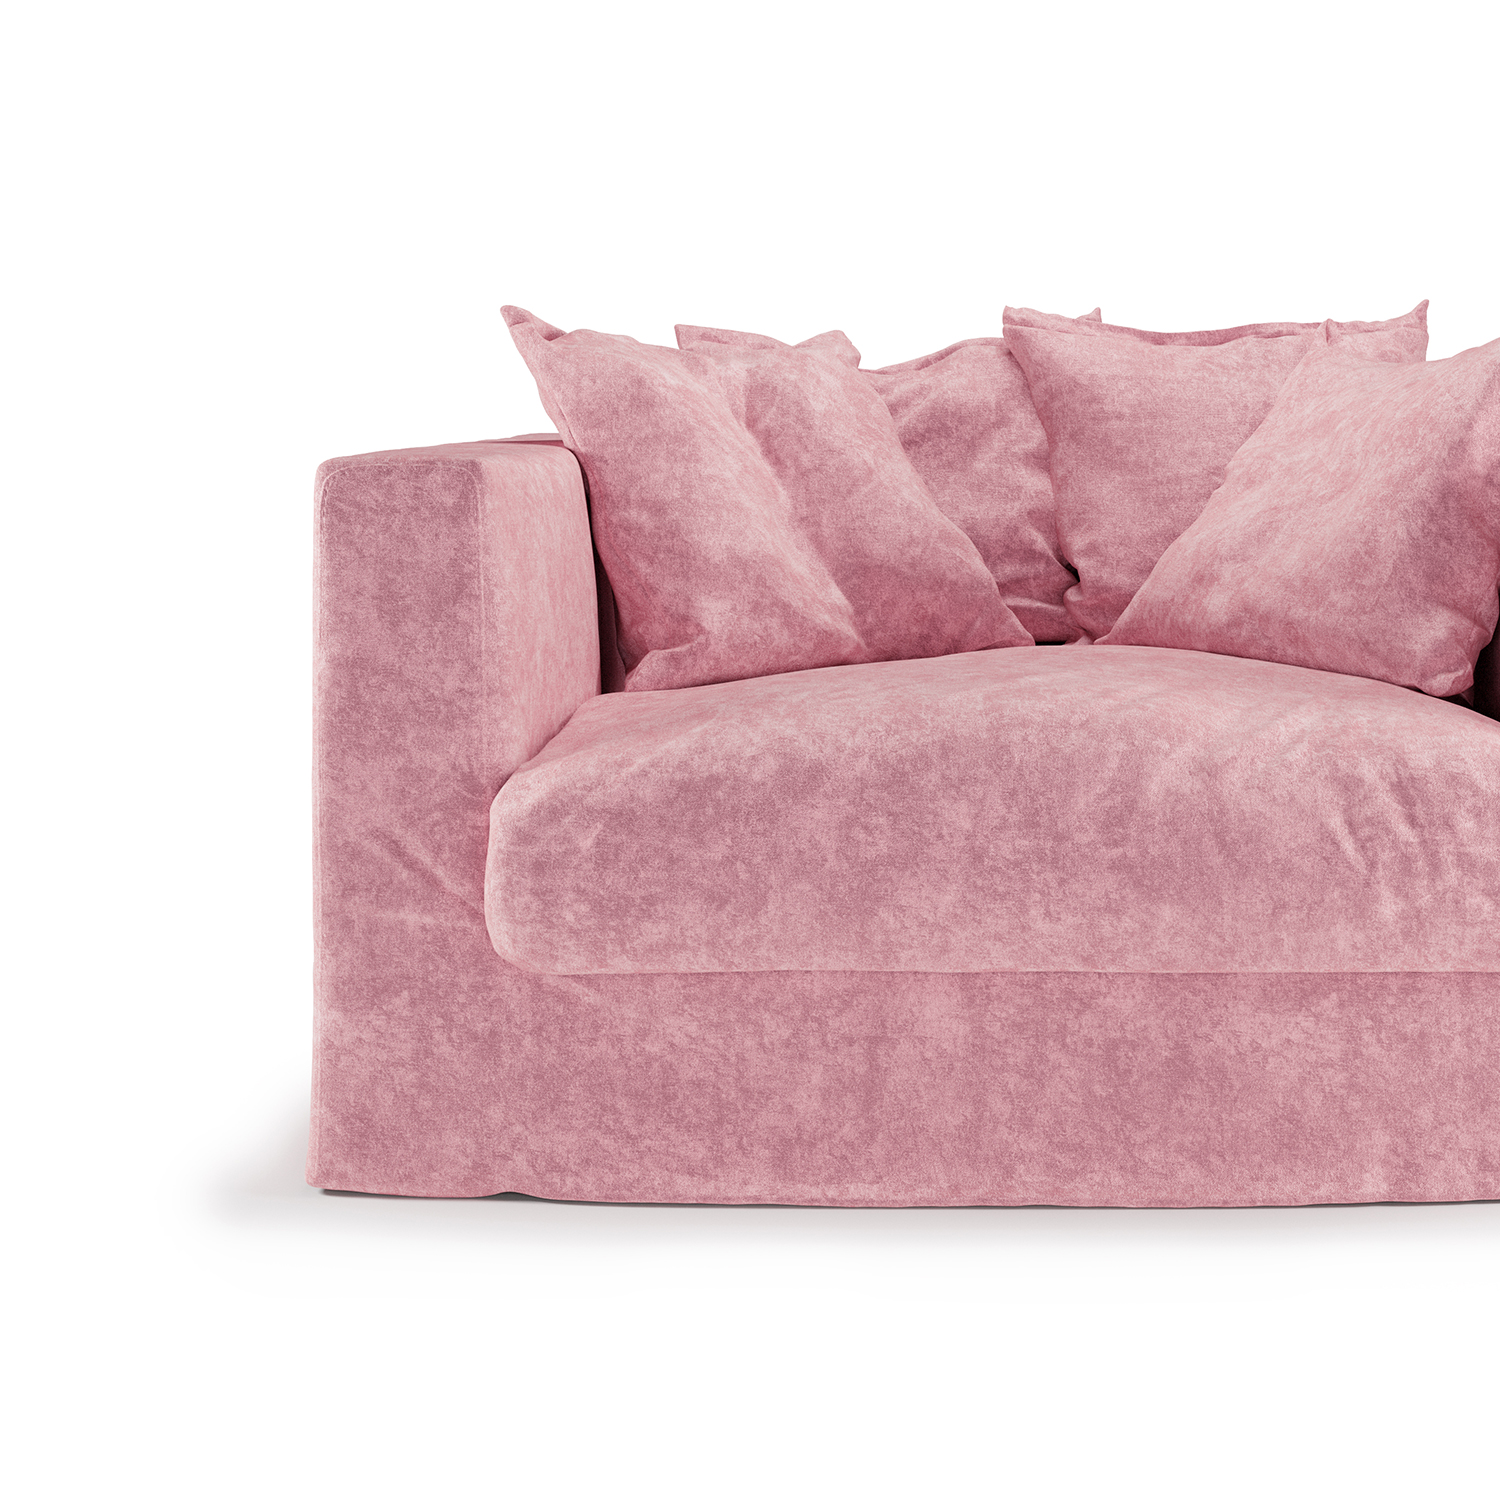 Le Grand Air Loveseat, Pastel Pink